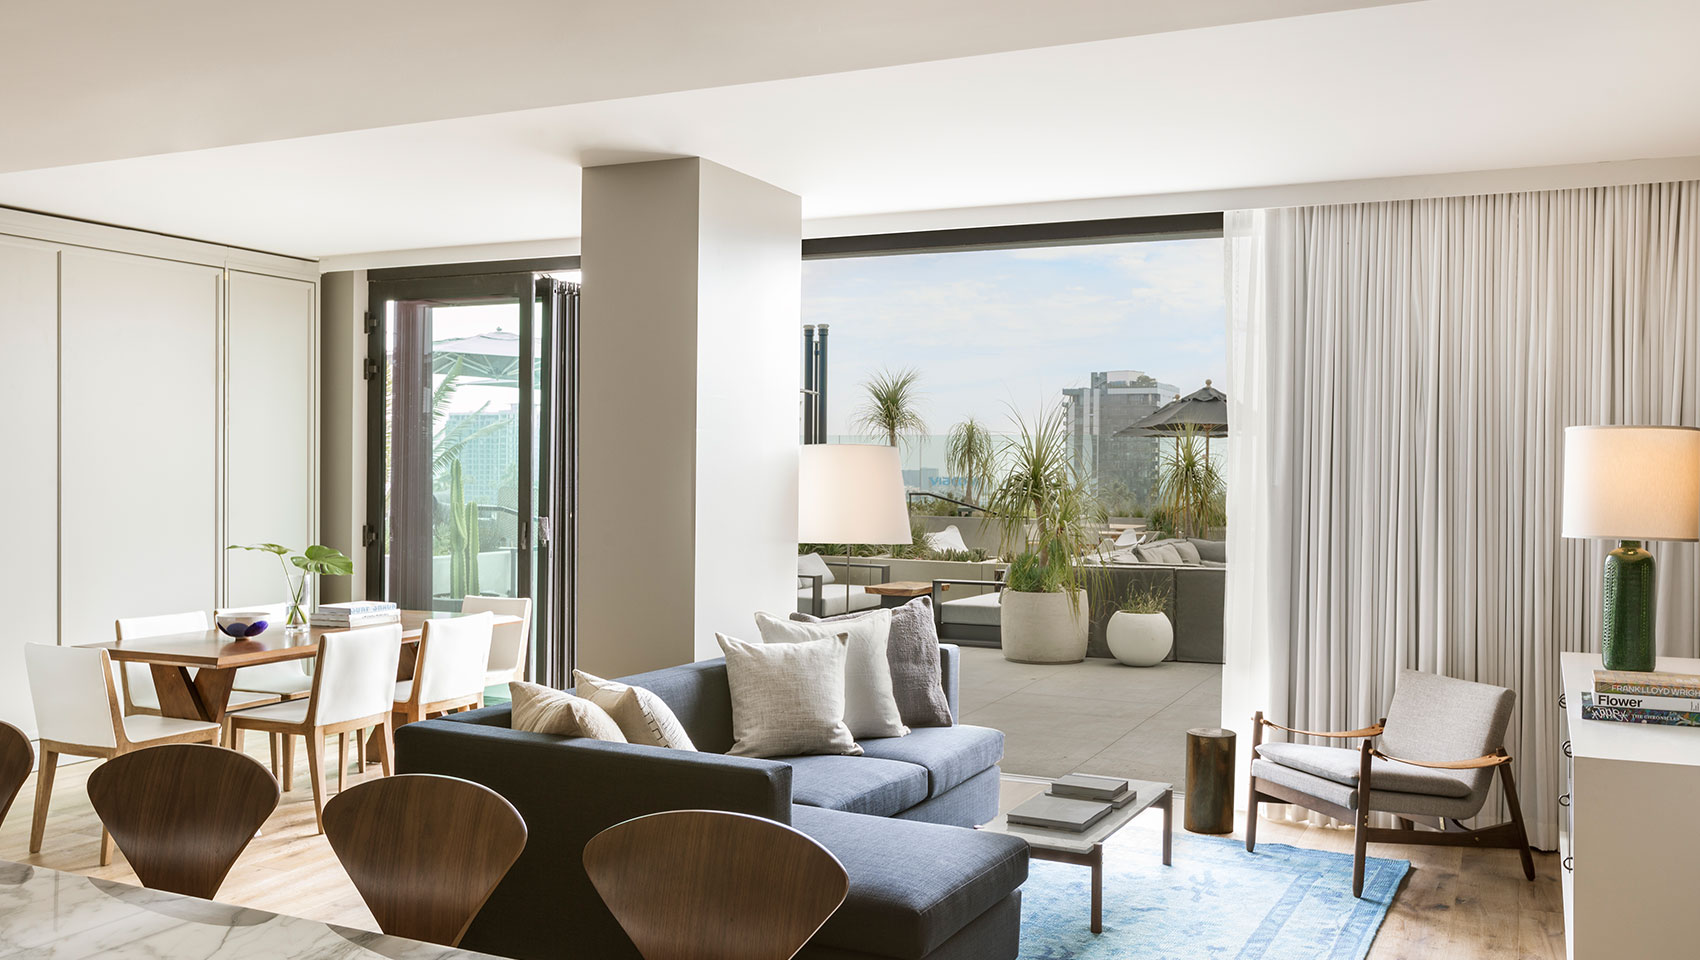 Luxury Hotel Suites | The Kimpton Everly Hotel